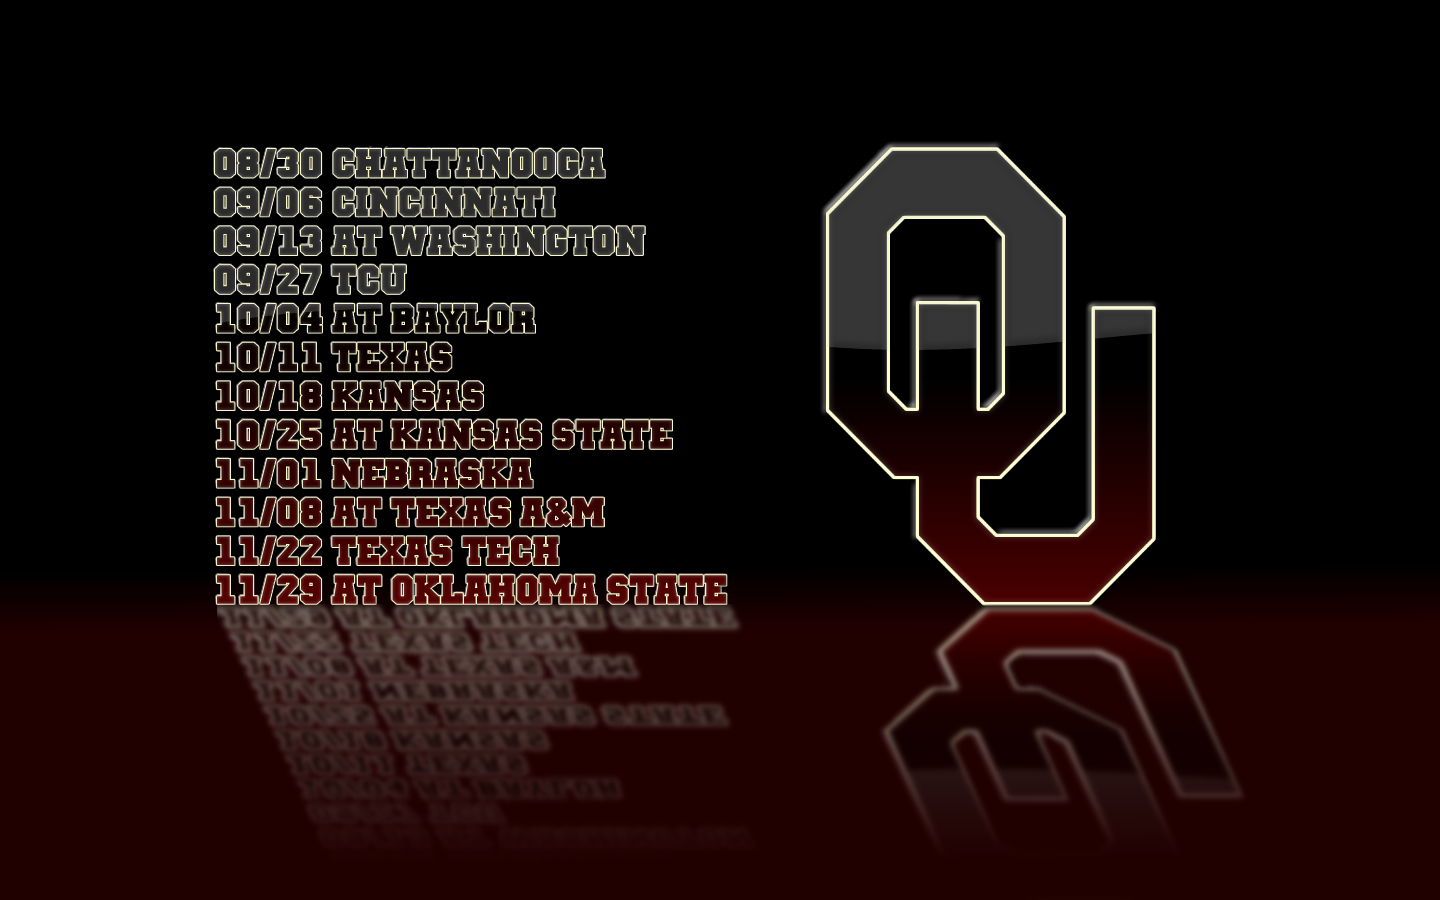 Show your Sooner pride with one of these 1440x900